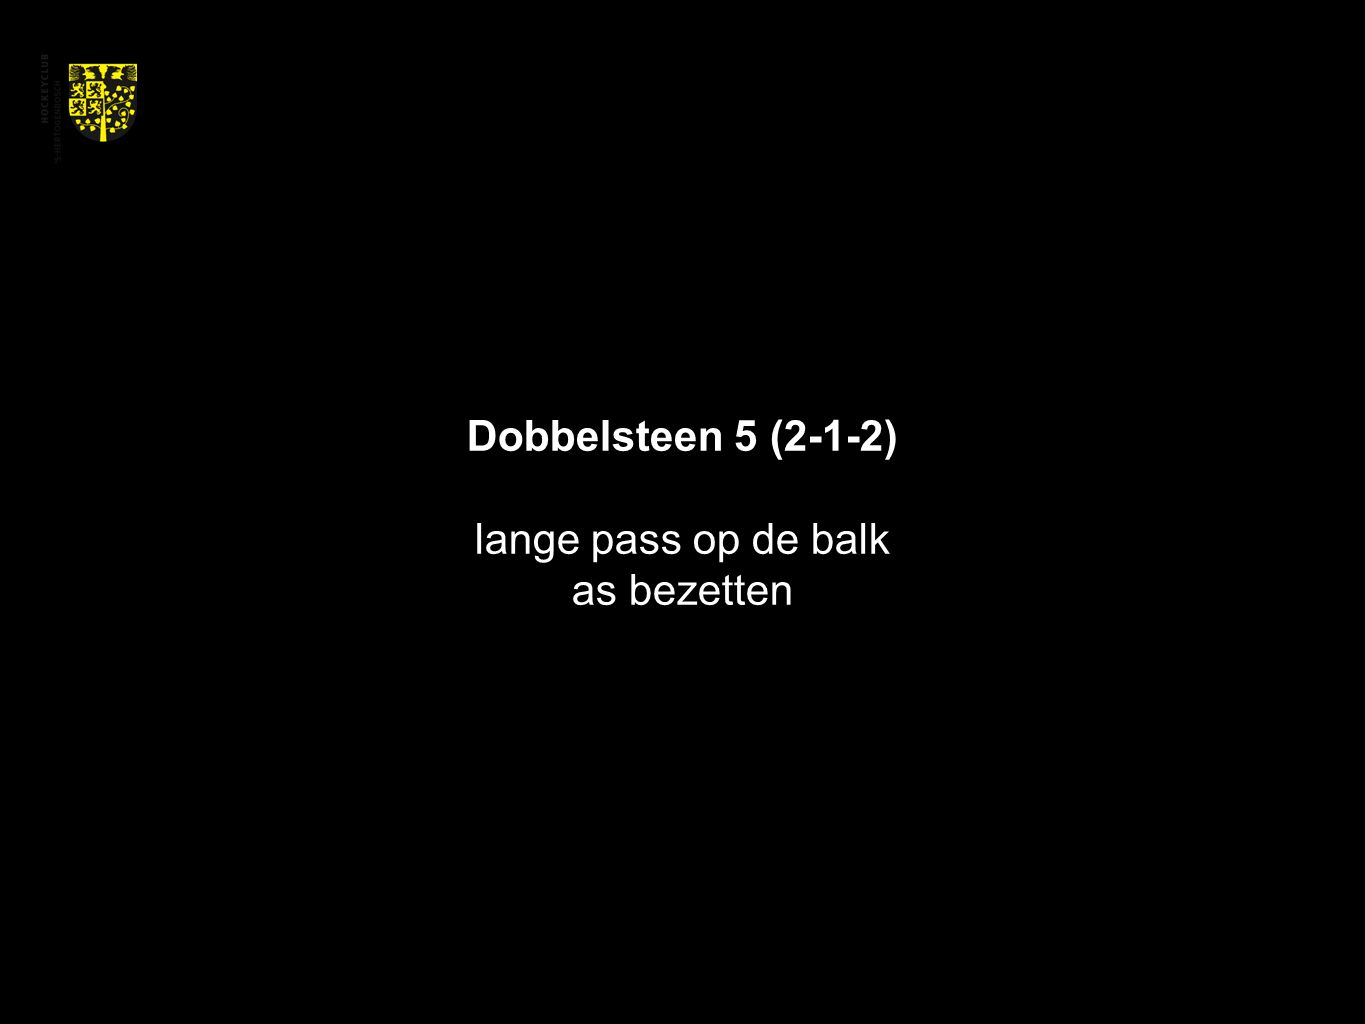 Dobbelsteen 5 (2-1-2) lange pass op de balk as bezetten